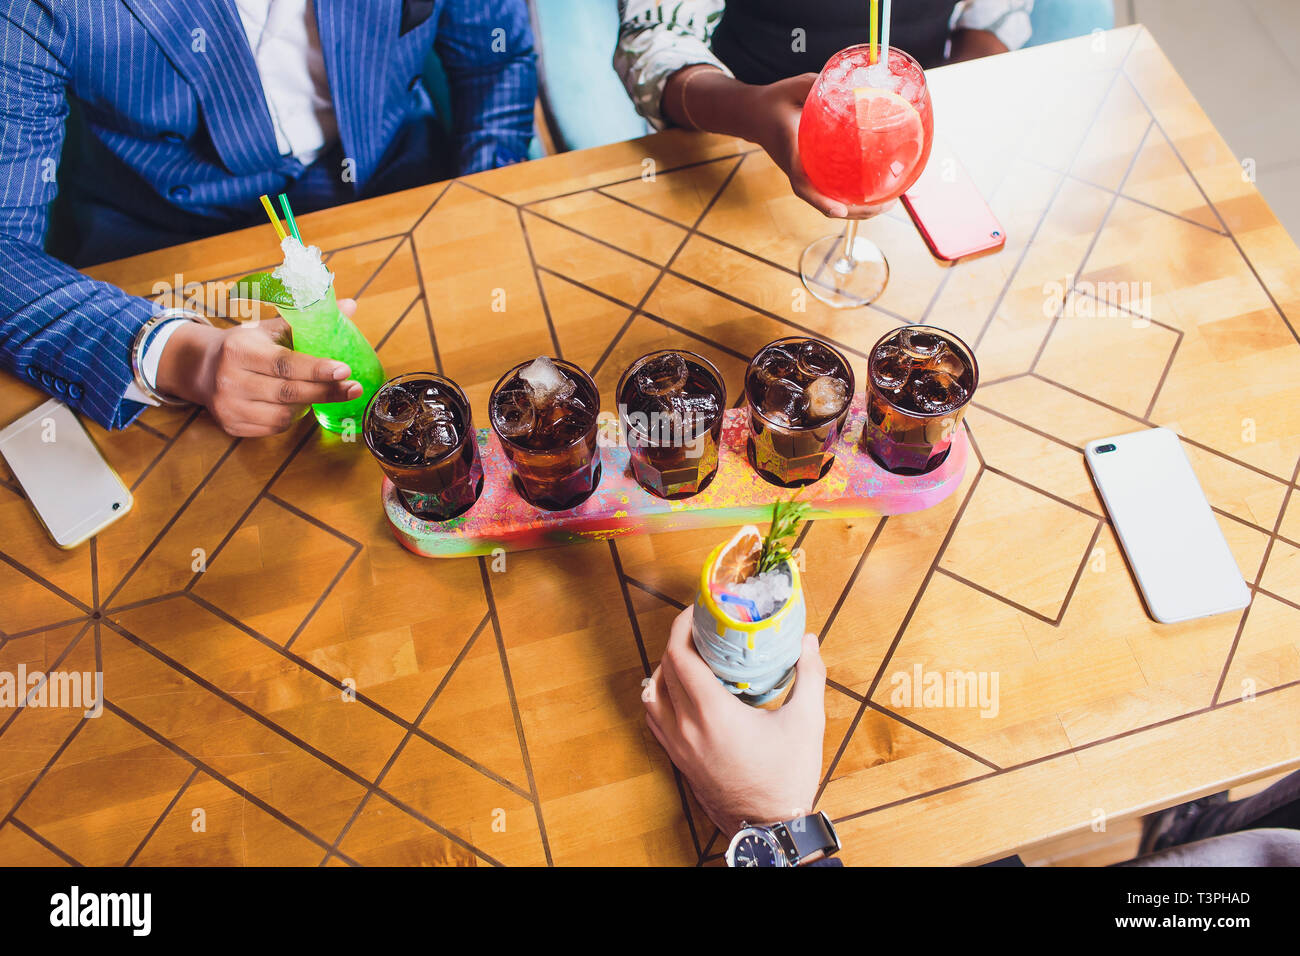 Group of friends drinking cocktails fashion bar restaurants - Side view point of people hands with smartphone - Social gathering concept with addicted - Stock Image